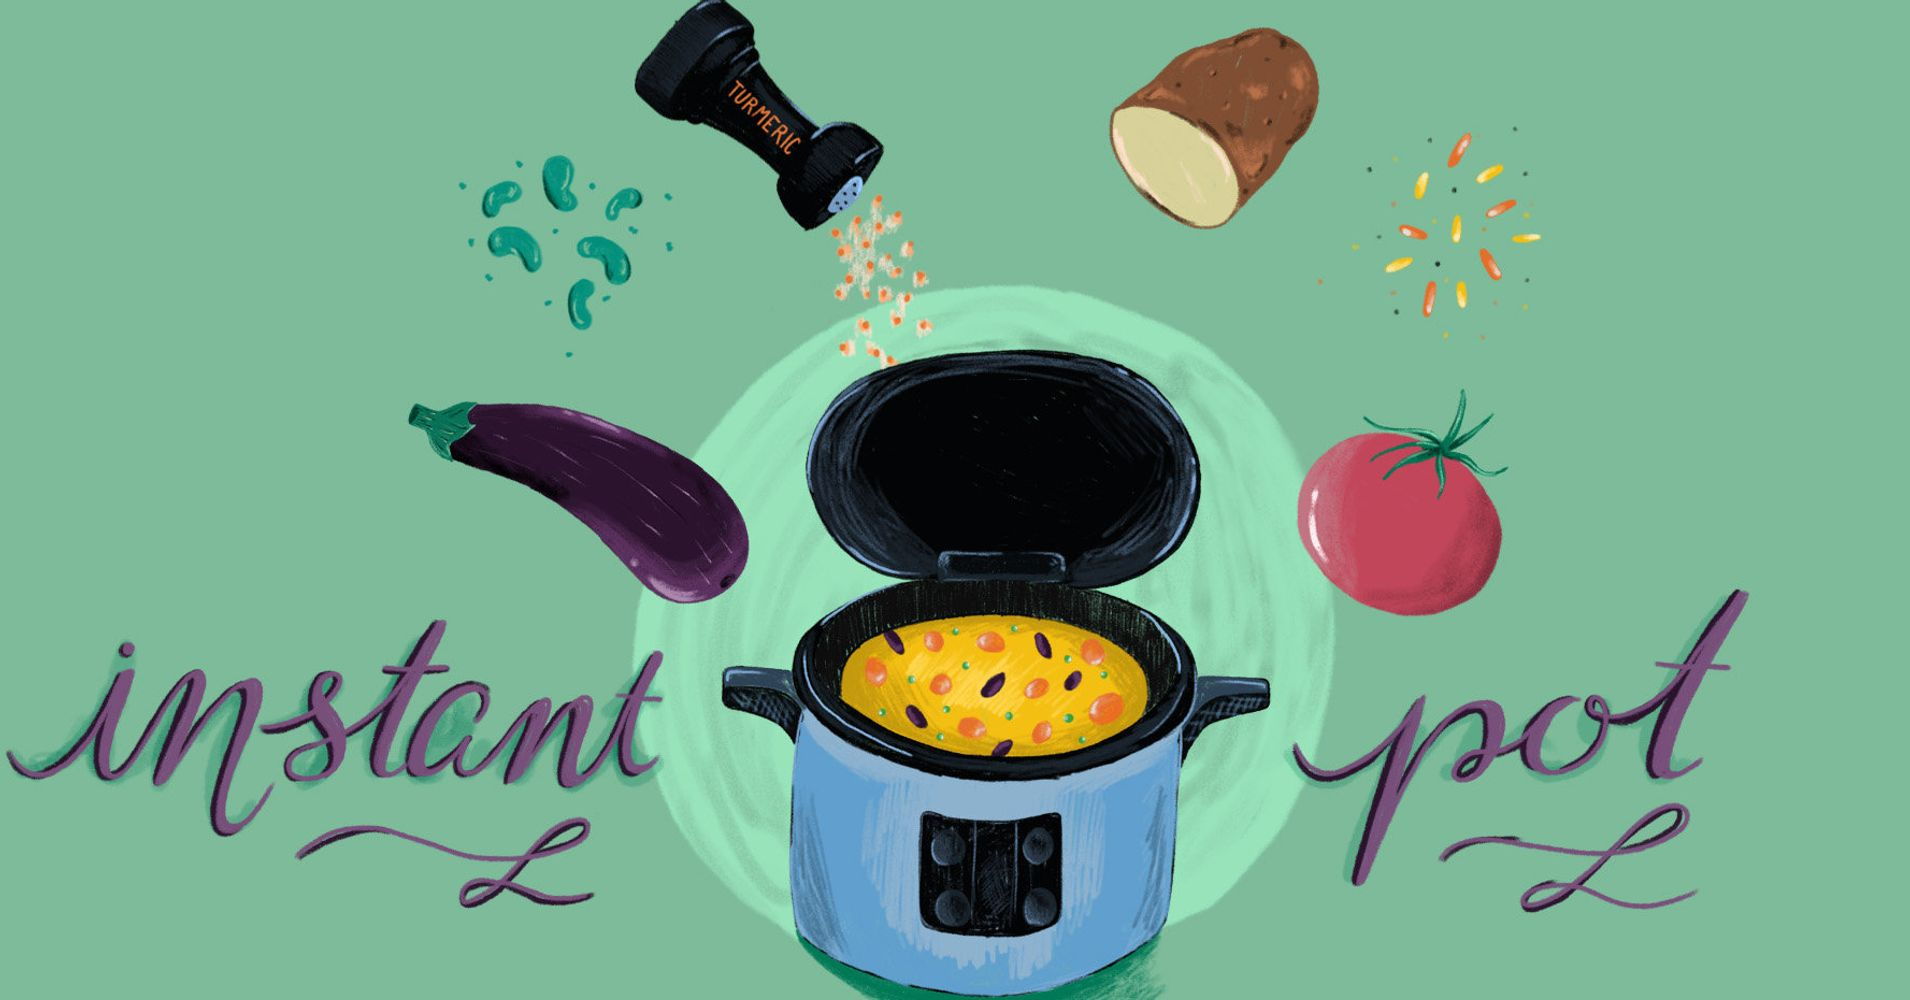 How The Instant Pot Became A New Immigrant Classic | HuffPost